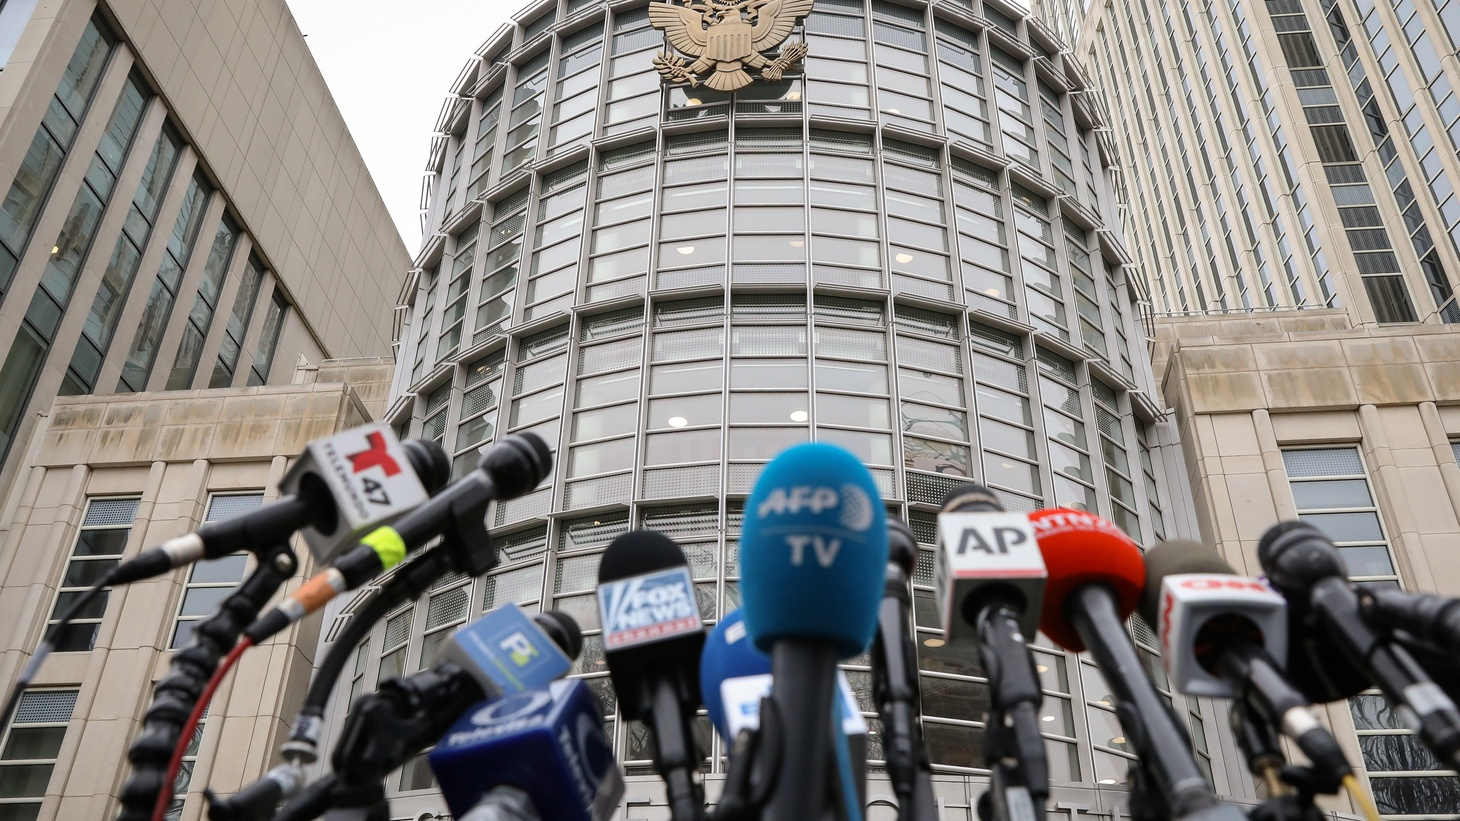 """Microphones are placed outside the Brooklyn Federal Courthouse, during the trial of Joaquin Guzman, the Mexican drug lord known as """"El Chapo,"""" in the Brooklyn borough of New York, U.S., February 7, 2019."""